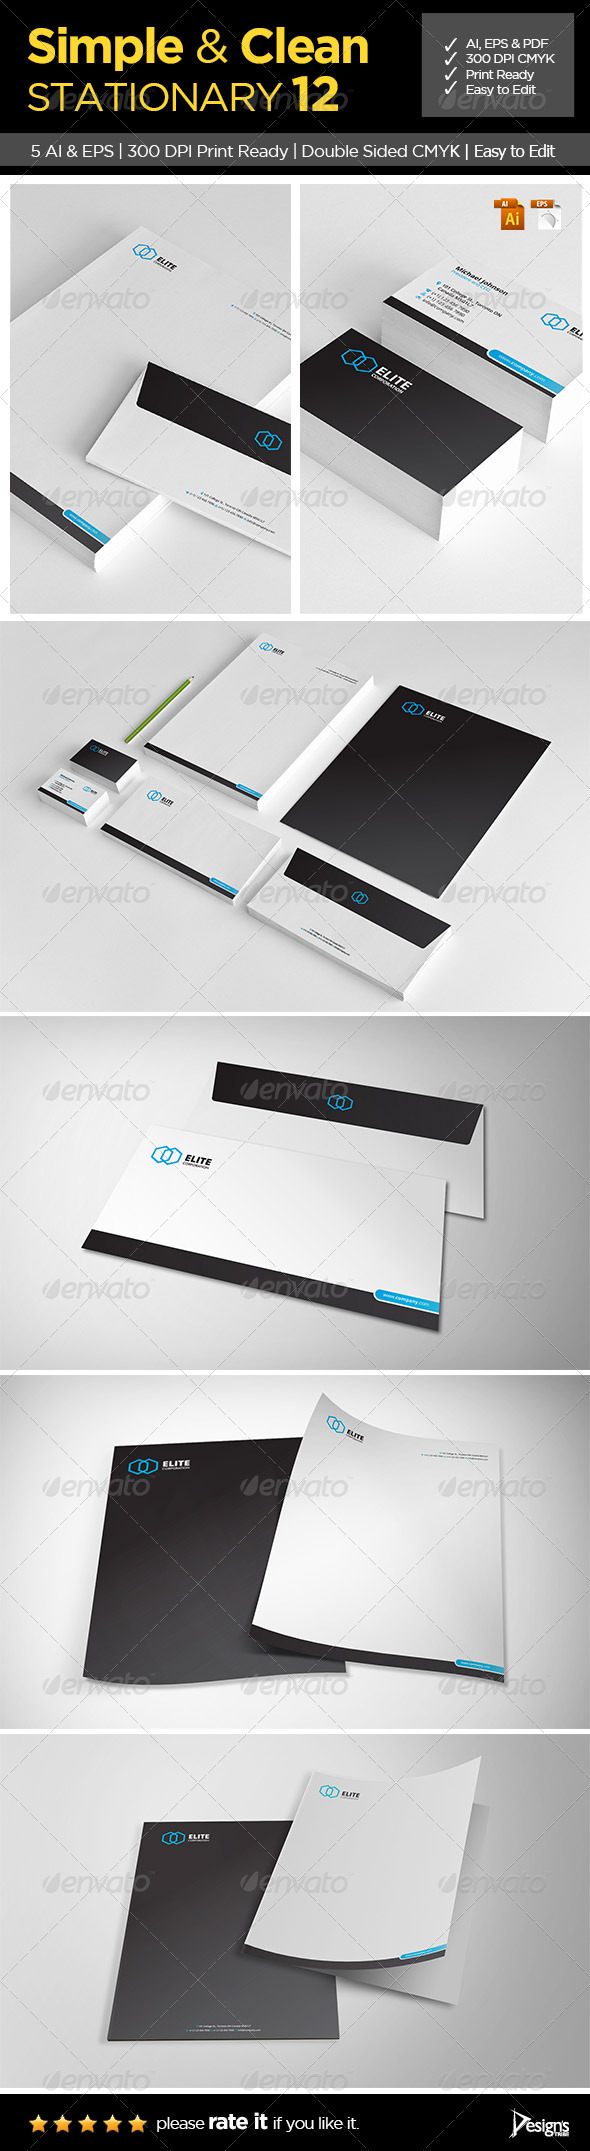 GraphicRiver Simple and Clean Stationary 12 6329384